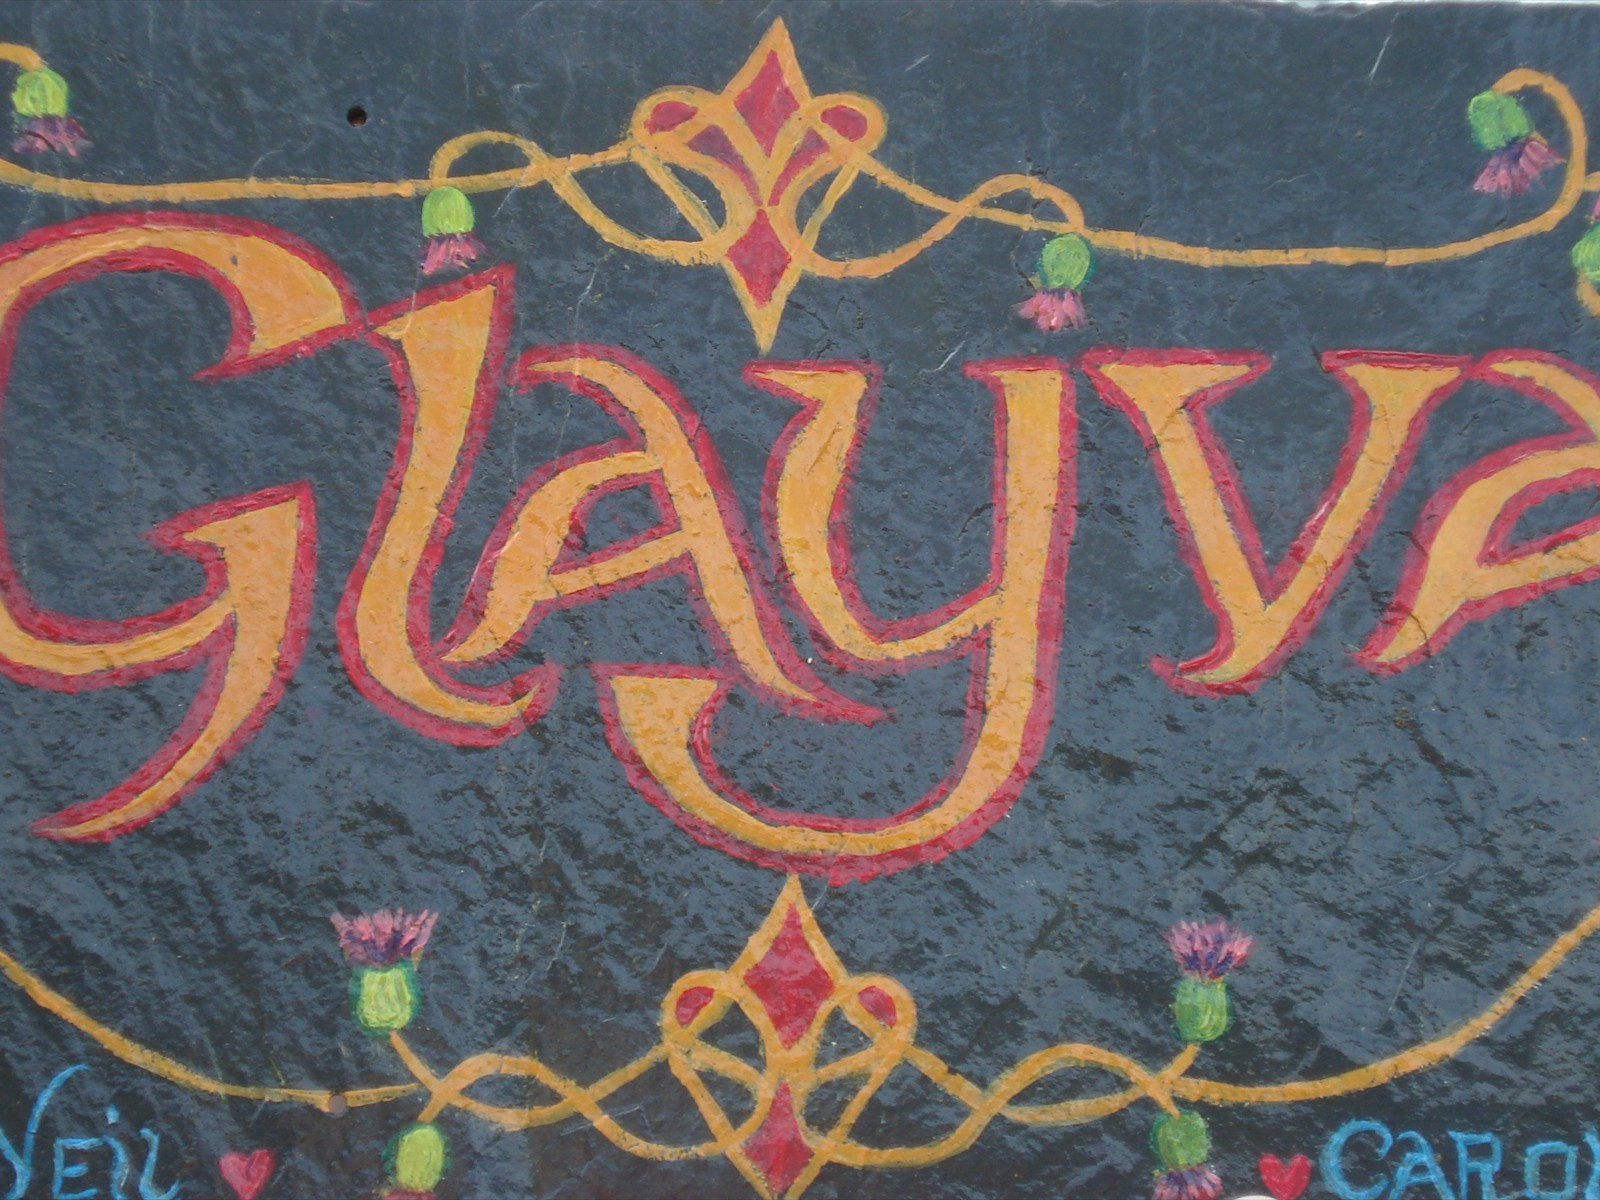 glayva sign